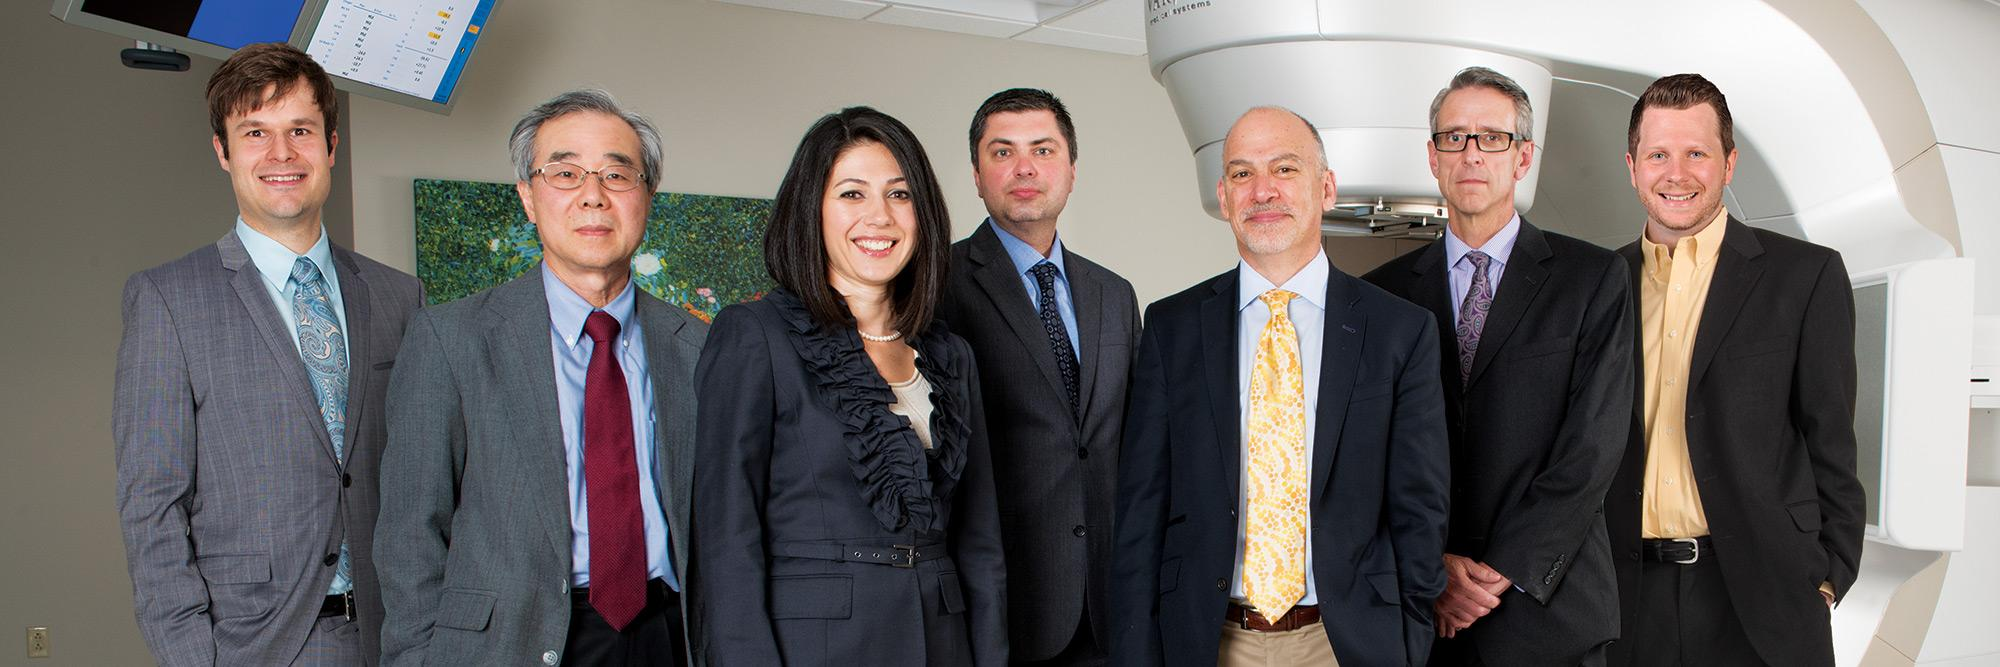 Radiation Oncology at Oneida | Upstate Cancer Center |SUNY